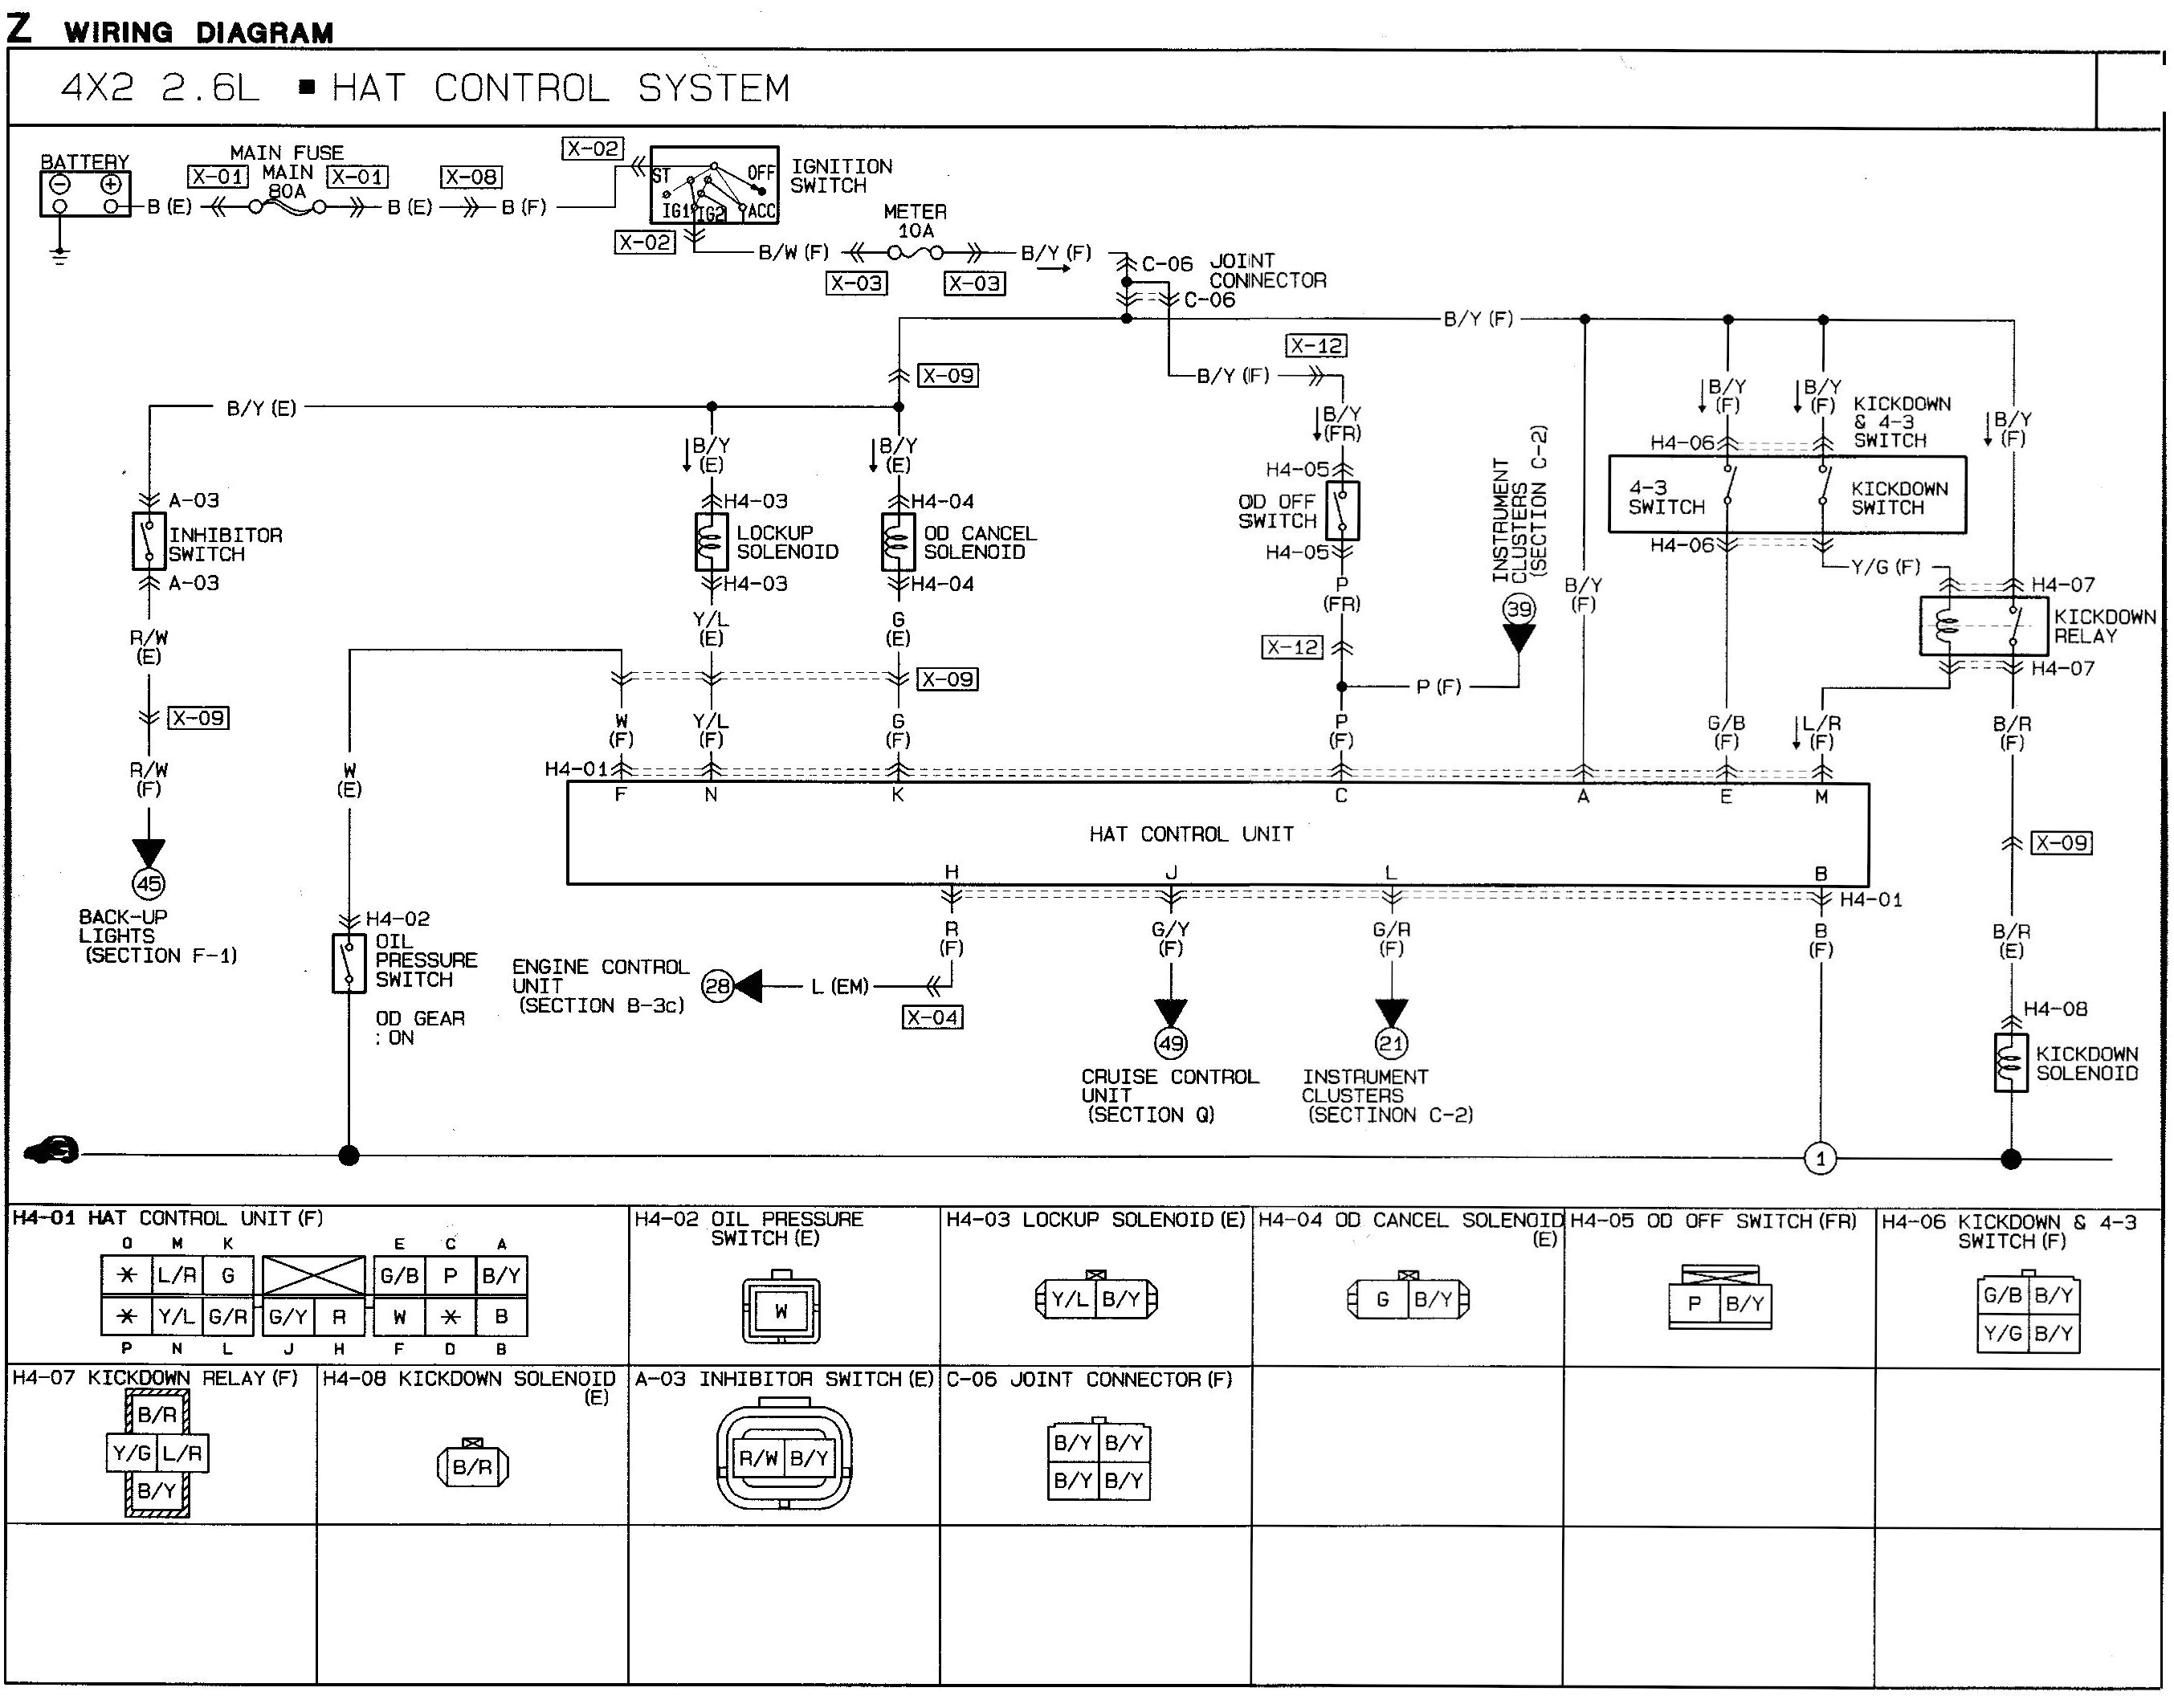 wabco abs wiring diagram inspirational golf 4 abs wiring diagram 1994 freightliner abs wiring diagrams